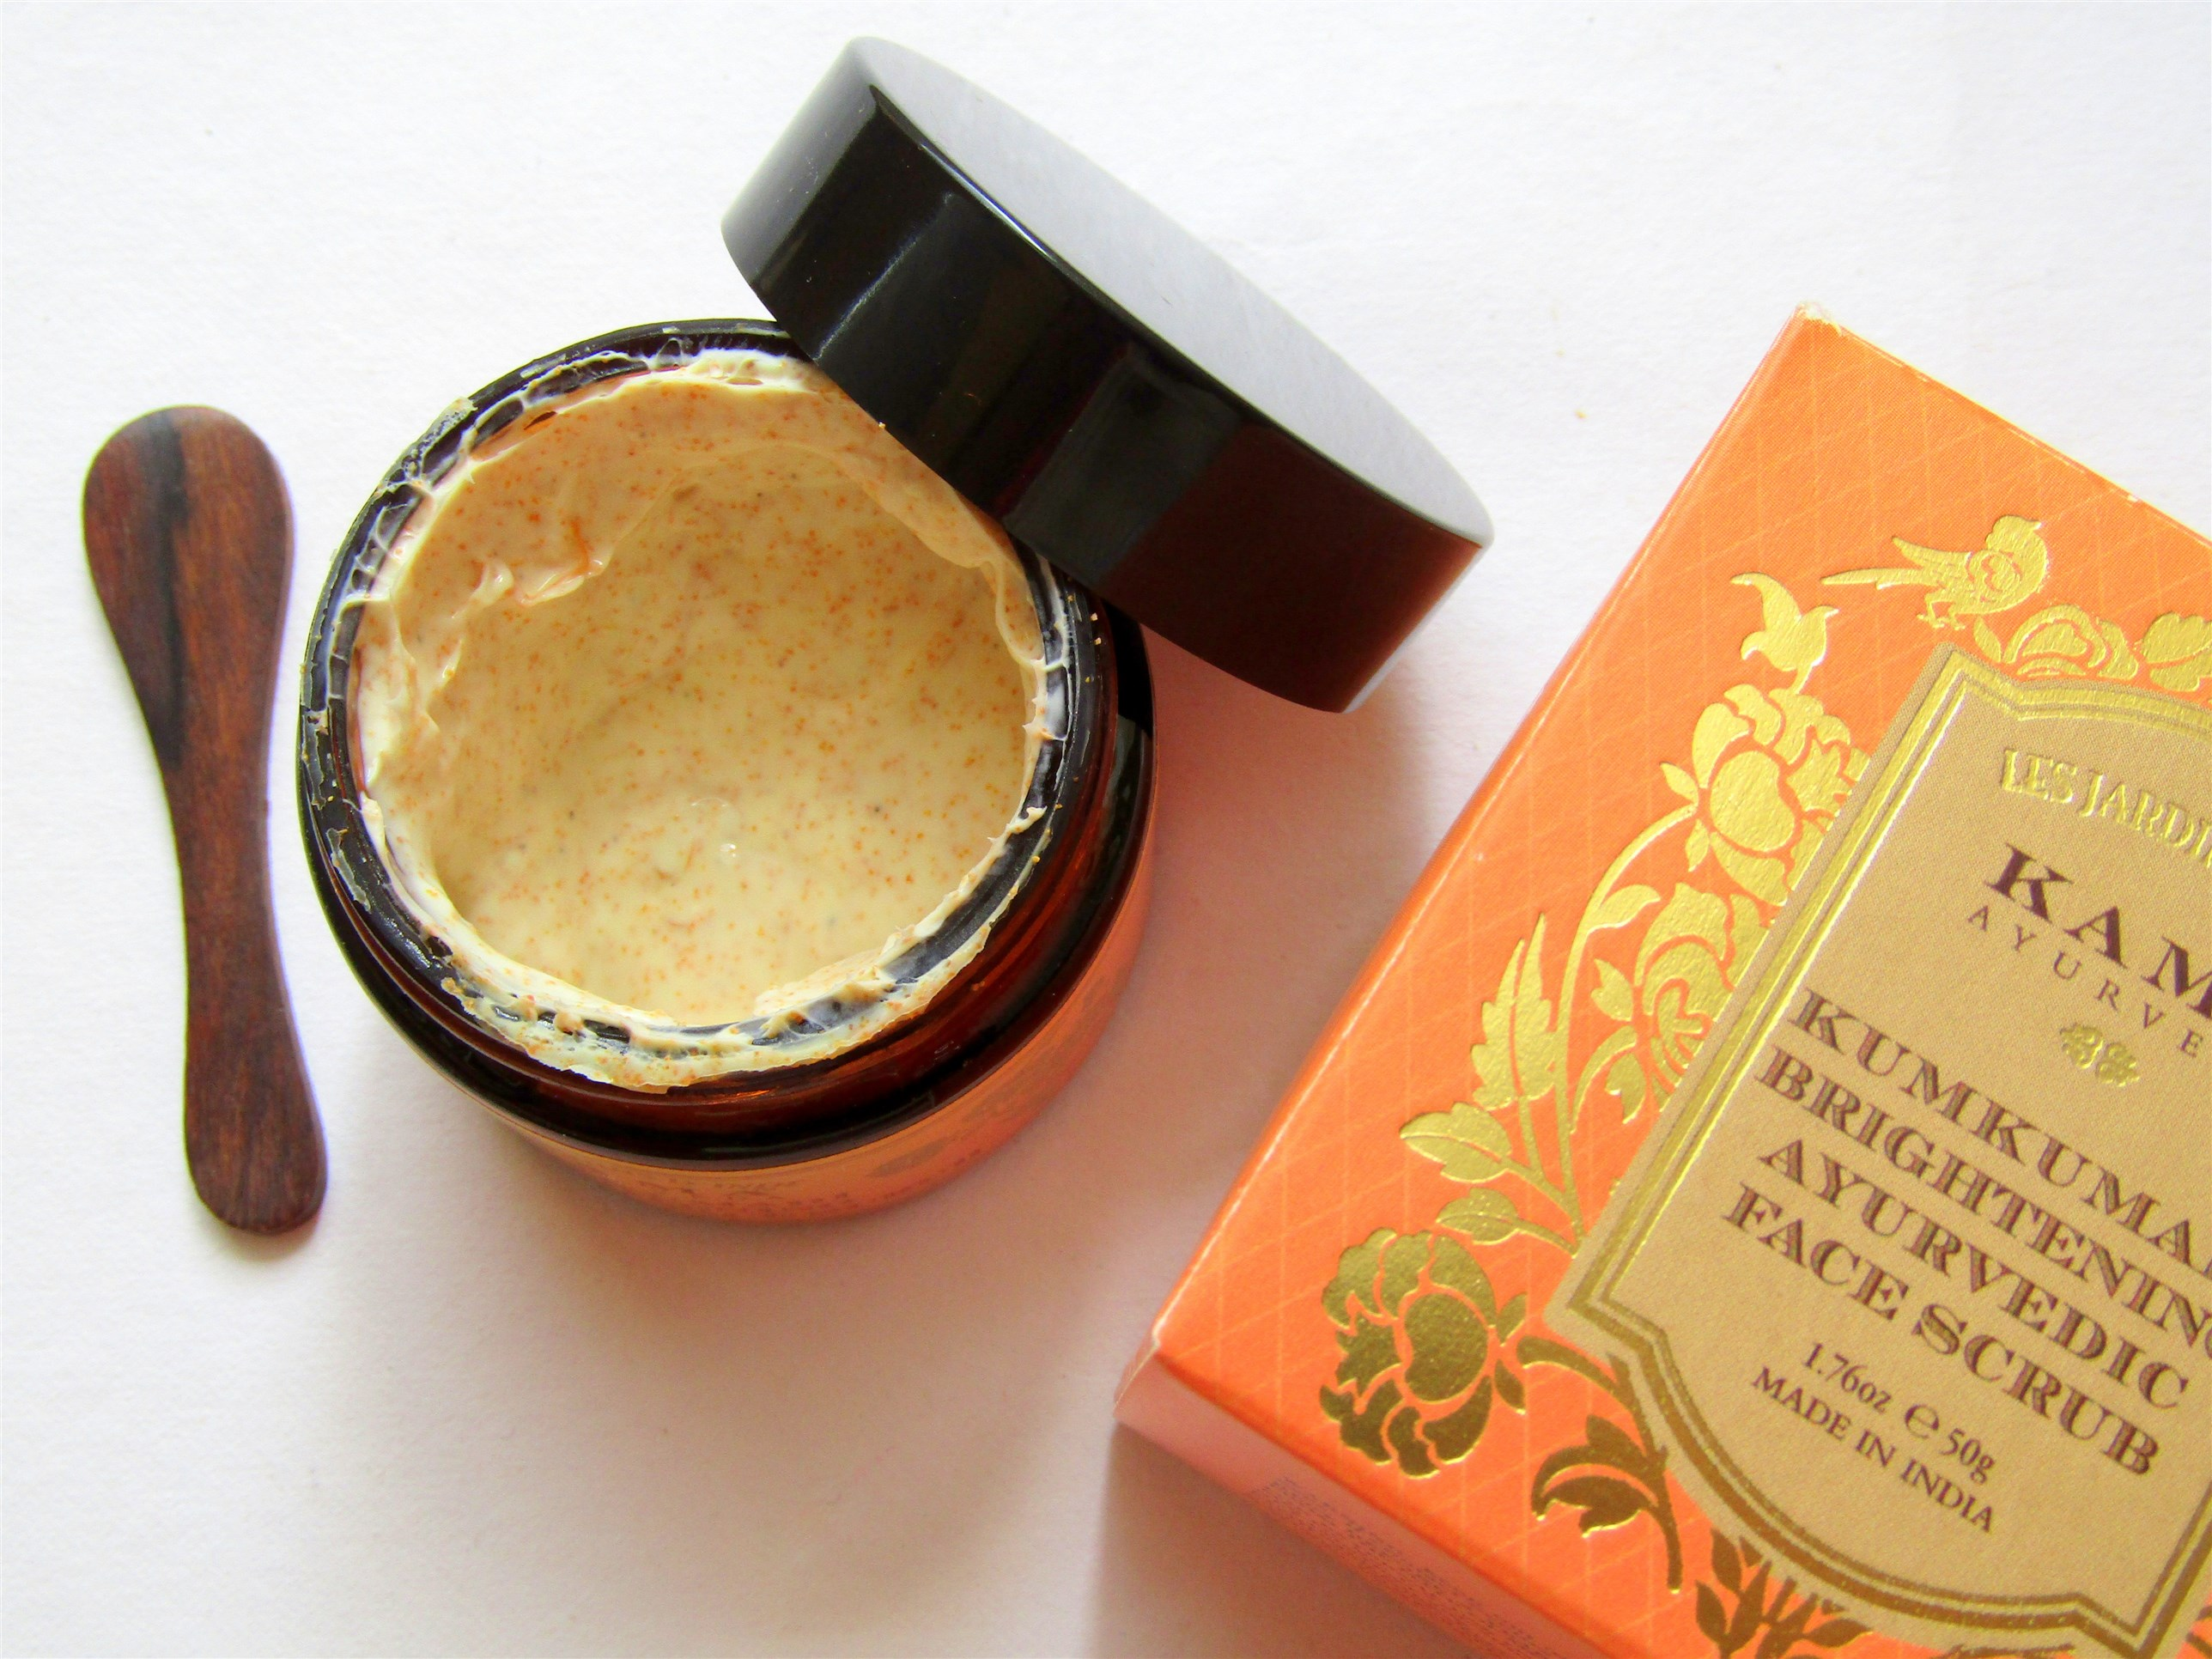 kama ayurveda kumkumadi brightening face scrub texture and packaging the jeromy diaries